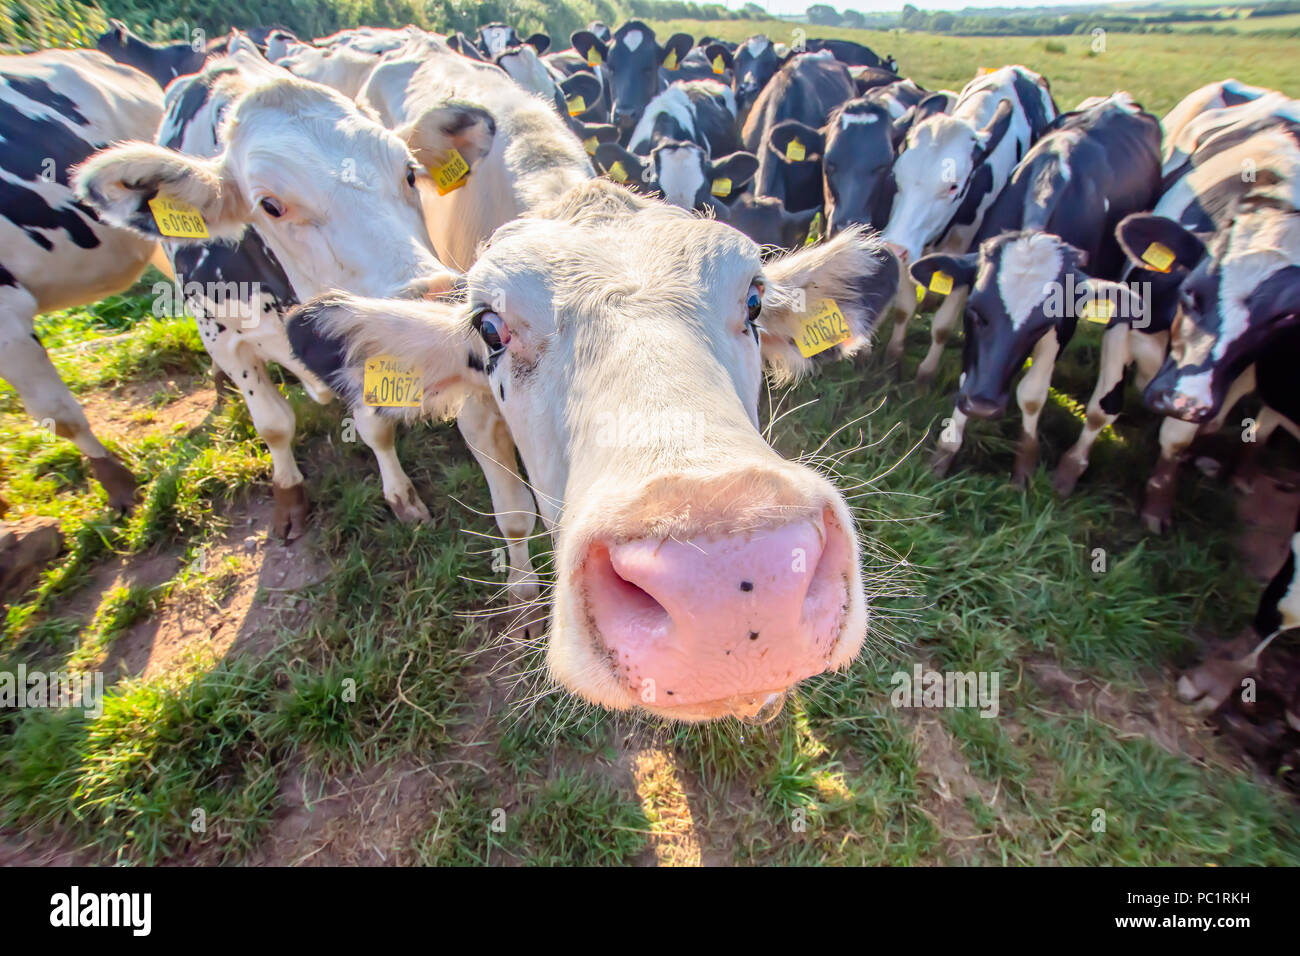 White cow close up portrait on pasture.Farm animal looking into camera with wide angle lens.Funny and adorable animals.Cattle Uk.Funny cows. - Stock Image